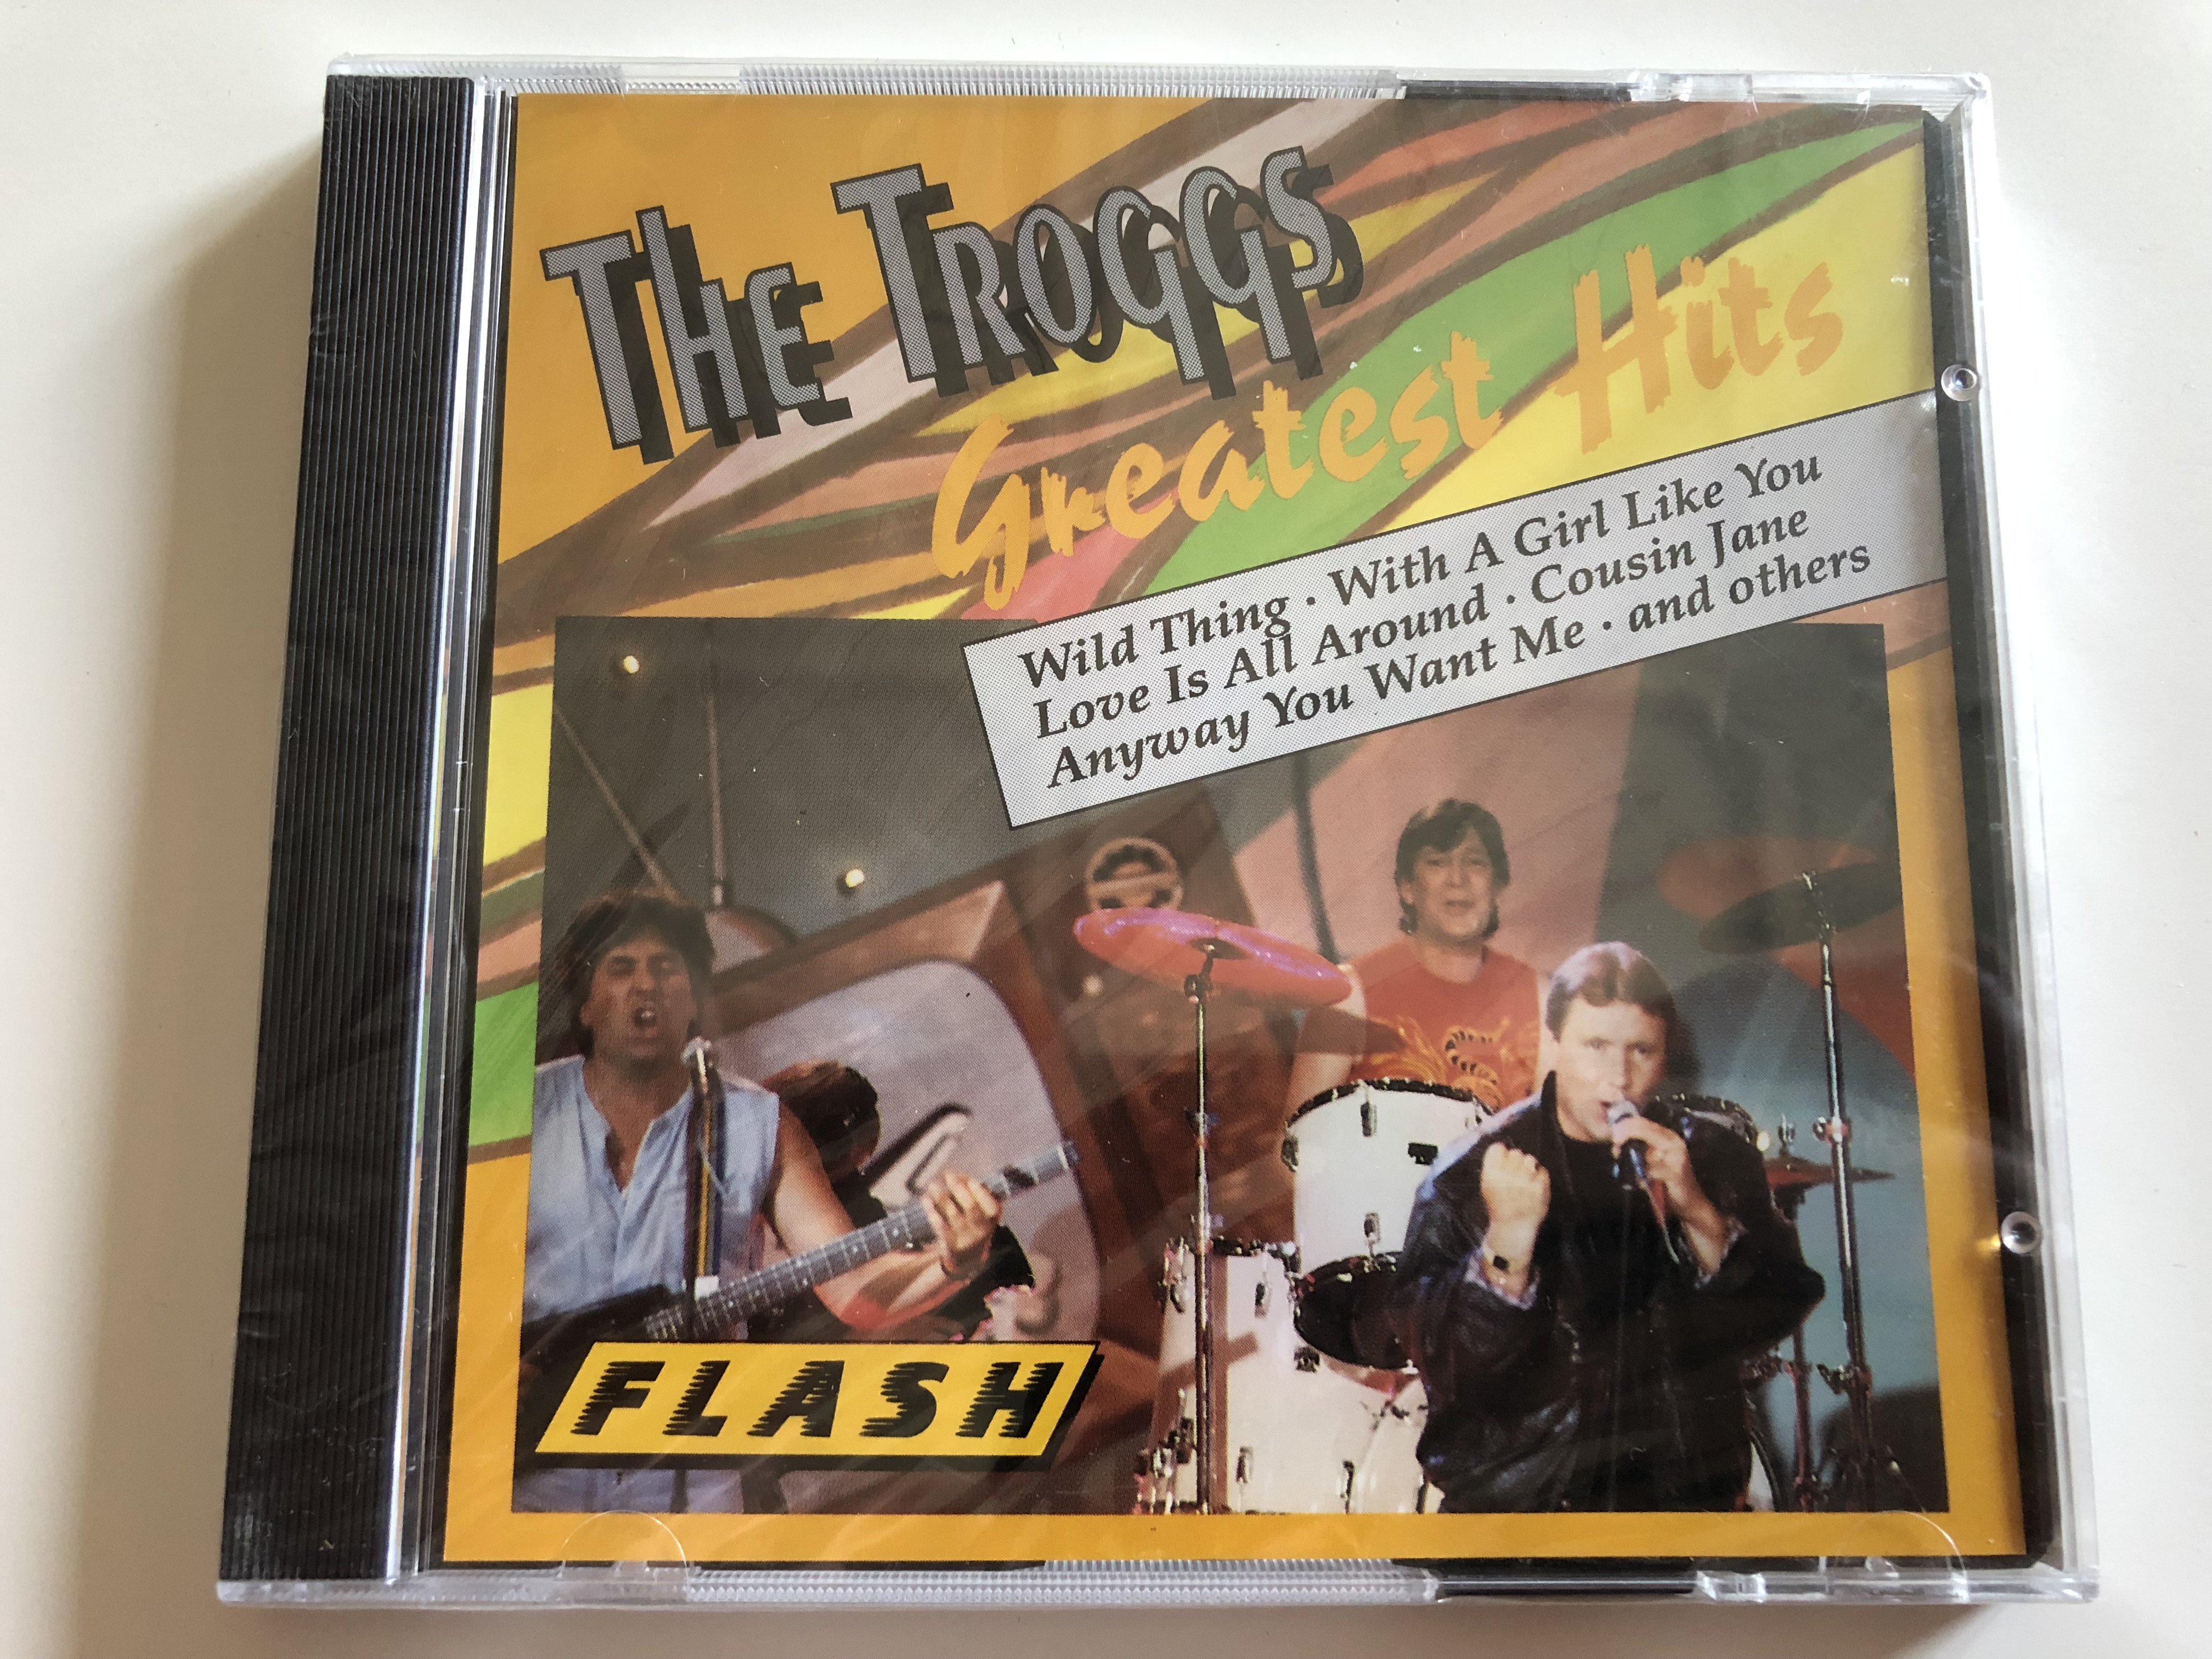 the-troggs-greatest-hits-wild-thing-love-is-all-around-cousin-jane-give-it-to-me-anyway-you-want-me-audio-cd-flash-8326-2-1-.jpg